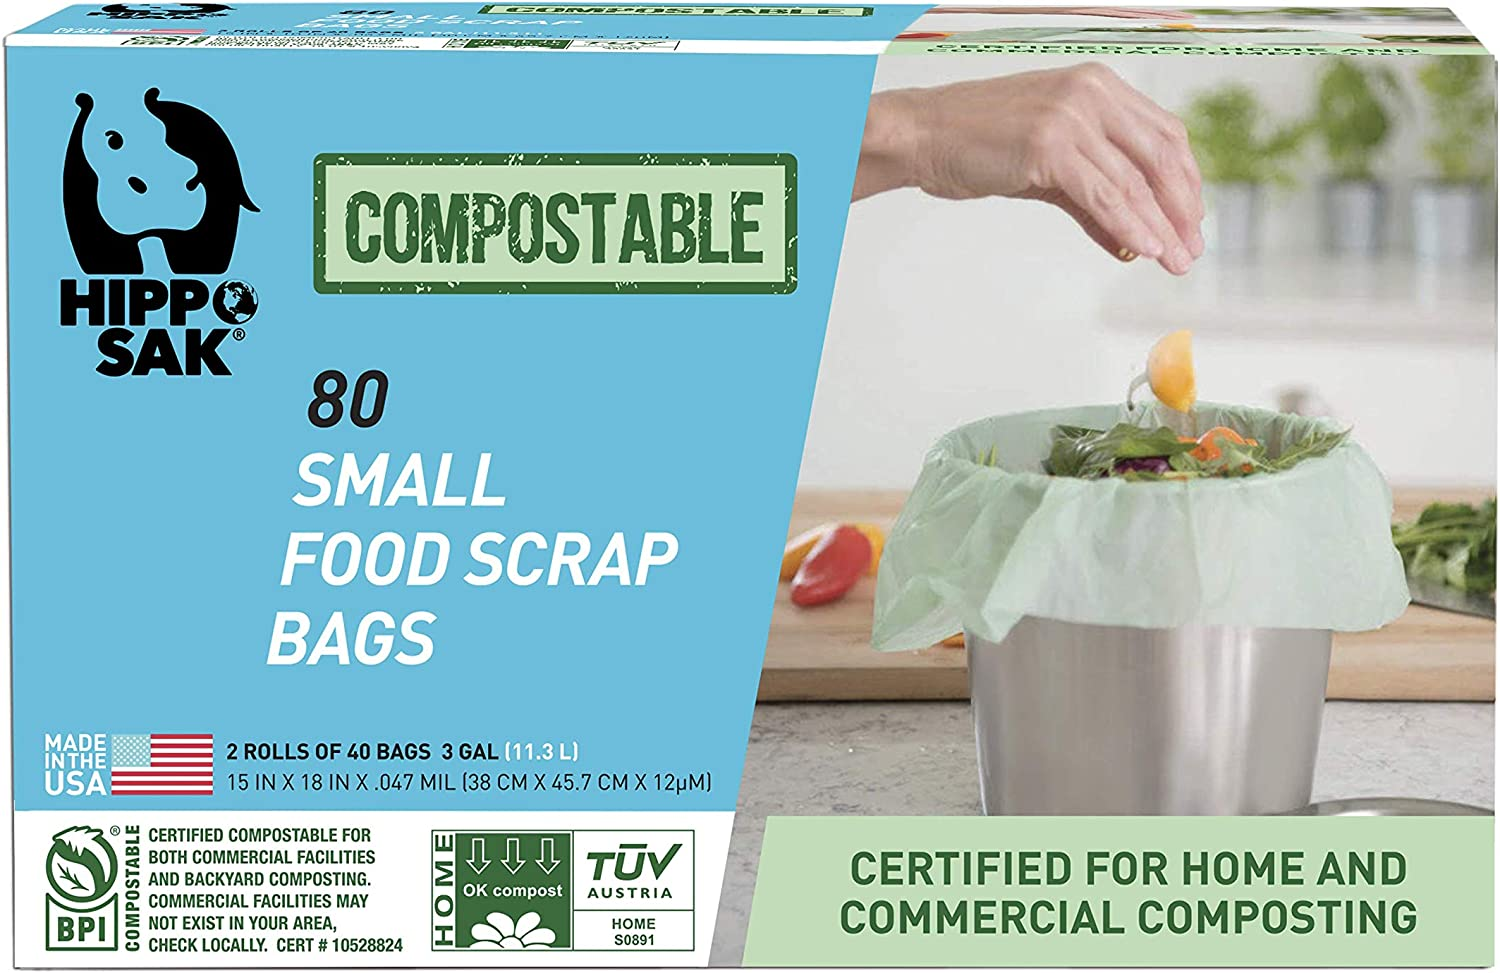 Hippo Sak Compostable Small Food Scrap Bags, 80 Count